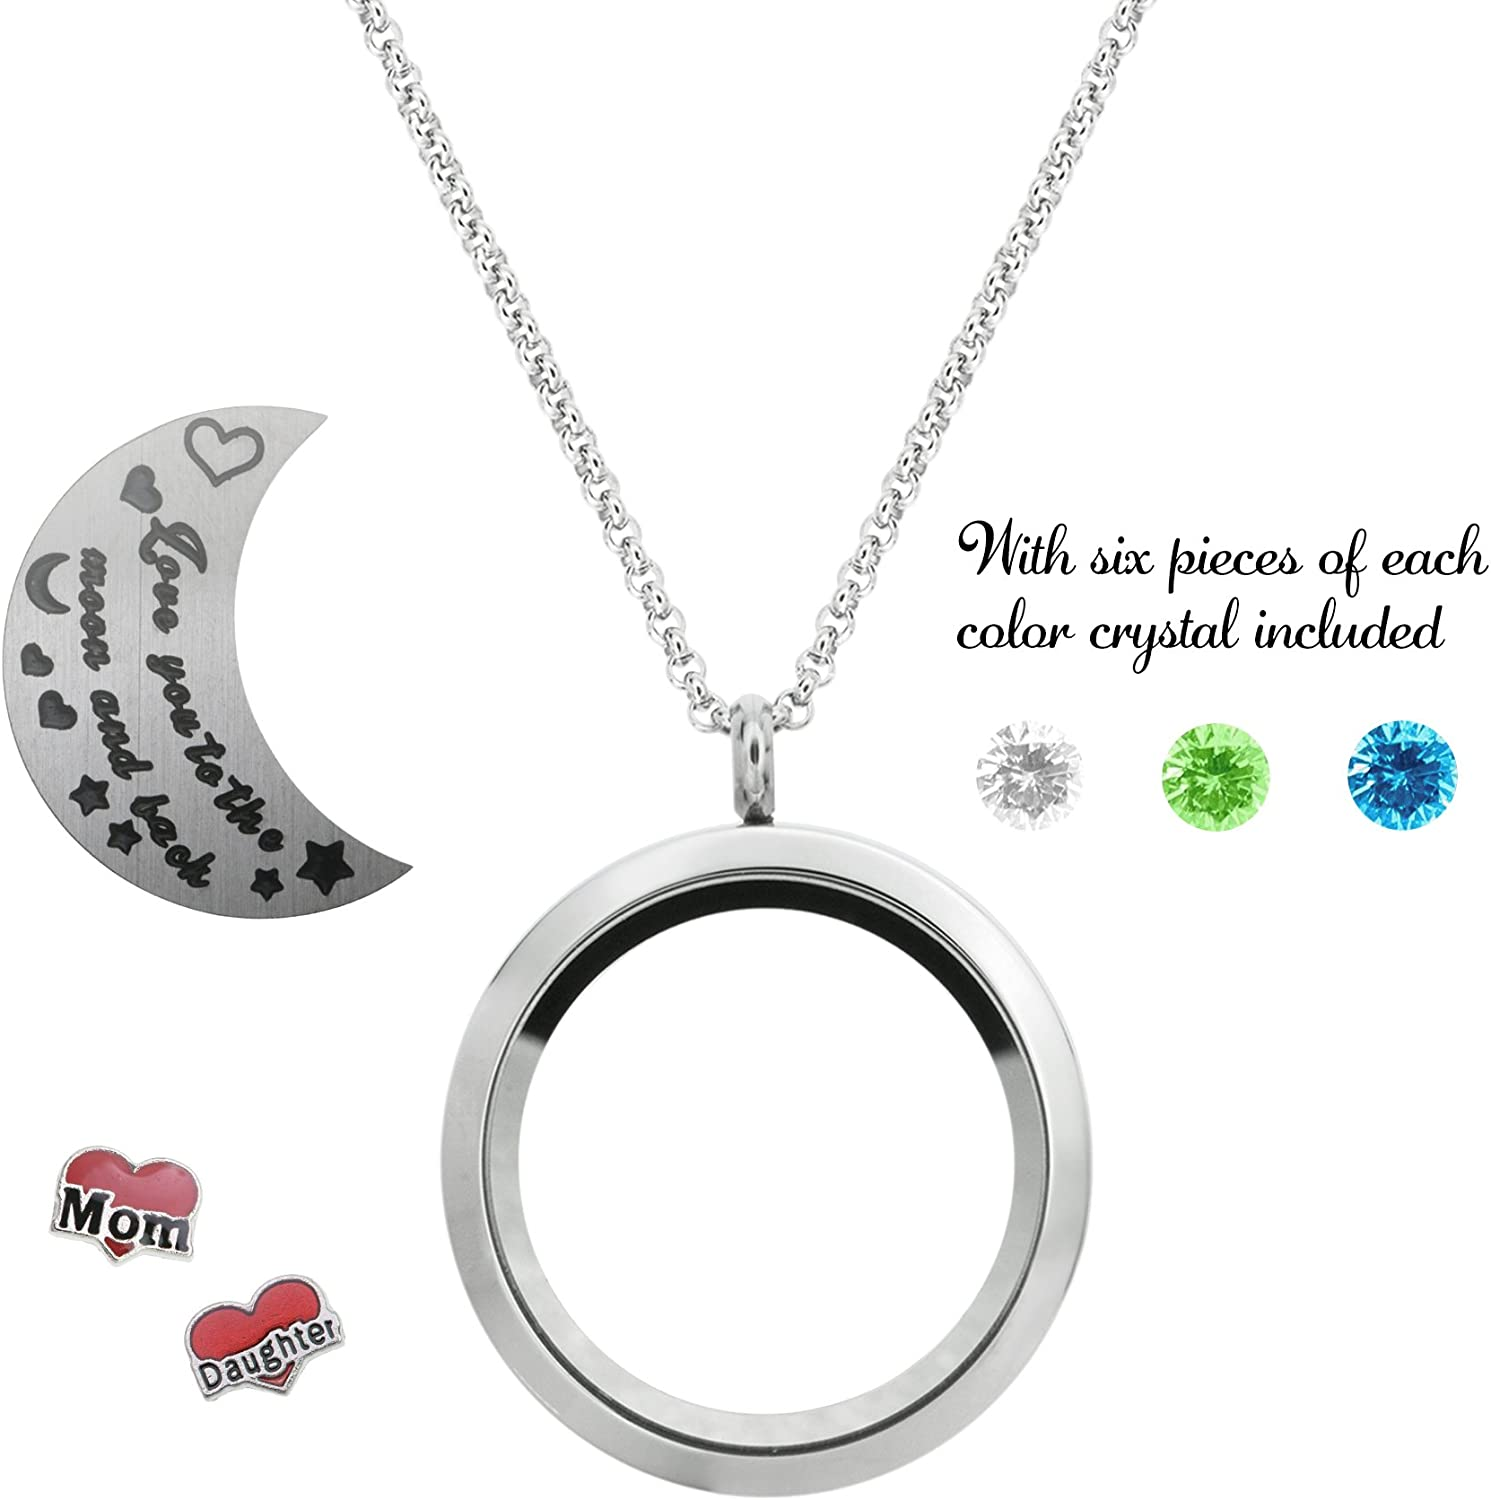 Queenberry Love You to The Moon and Back Family Floating Locket Crystal Charm Pendant Necklace